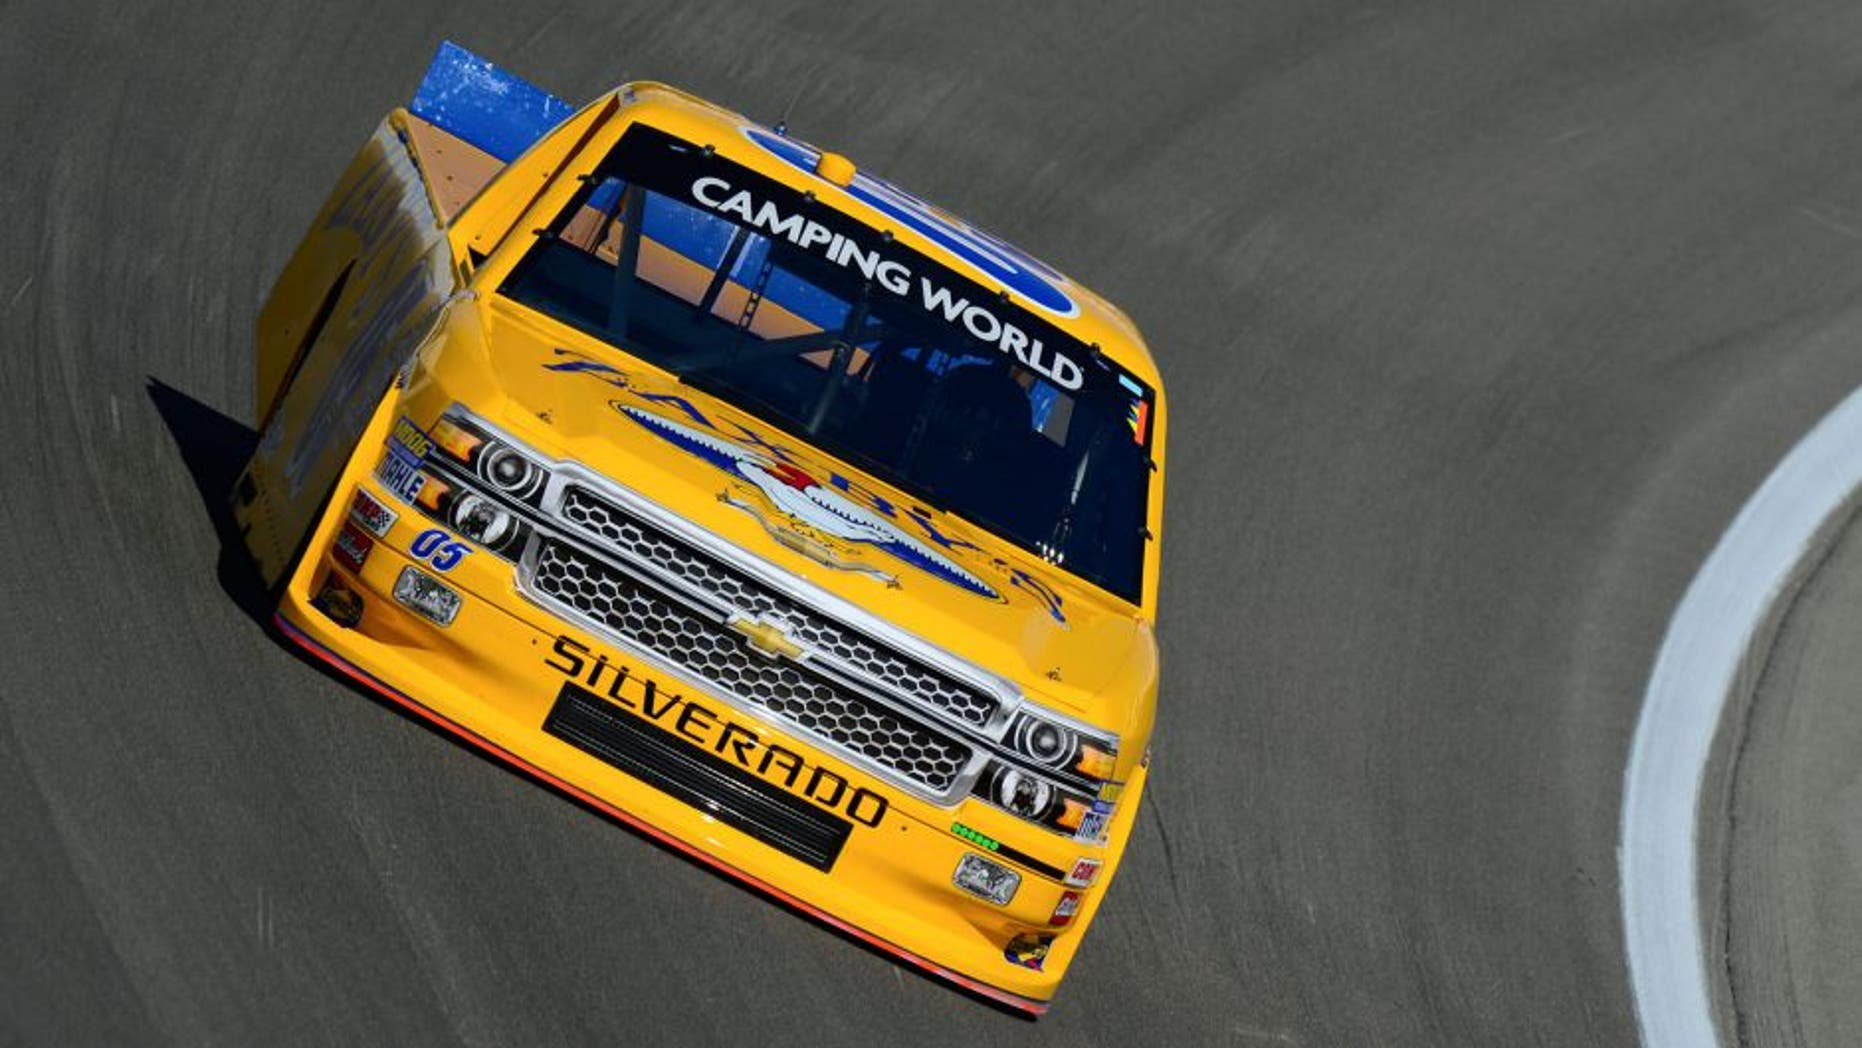 LAS VEGAS, NV - OCTOBER 3: John Wes Townley driver of the #05 Zaxby's Chevrolet during practice for the NASCAR Camping World Truck Series Rhino Linings 350 at the Las Vegas Motor Speedway on October 3, 2015 in Las Vegas, Nevada. (Photo by Robert Laberge/NASCAR via Getty Images)